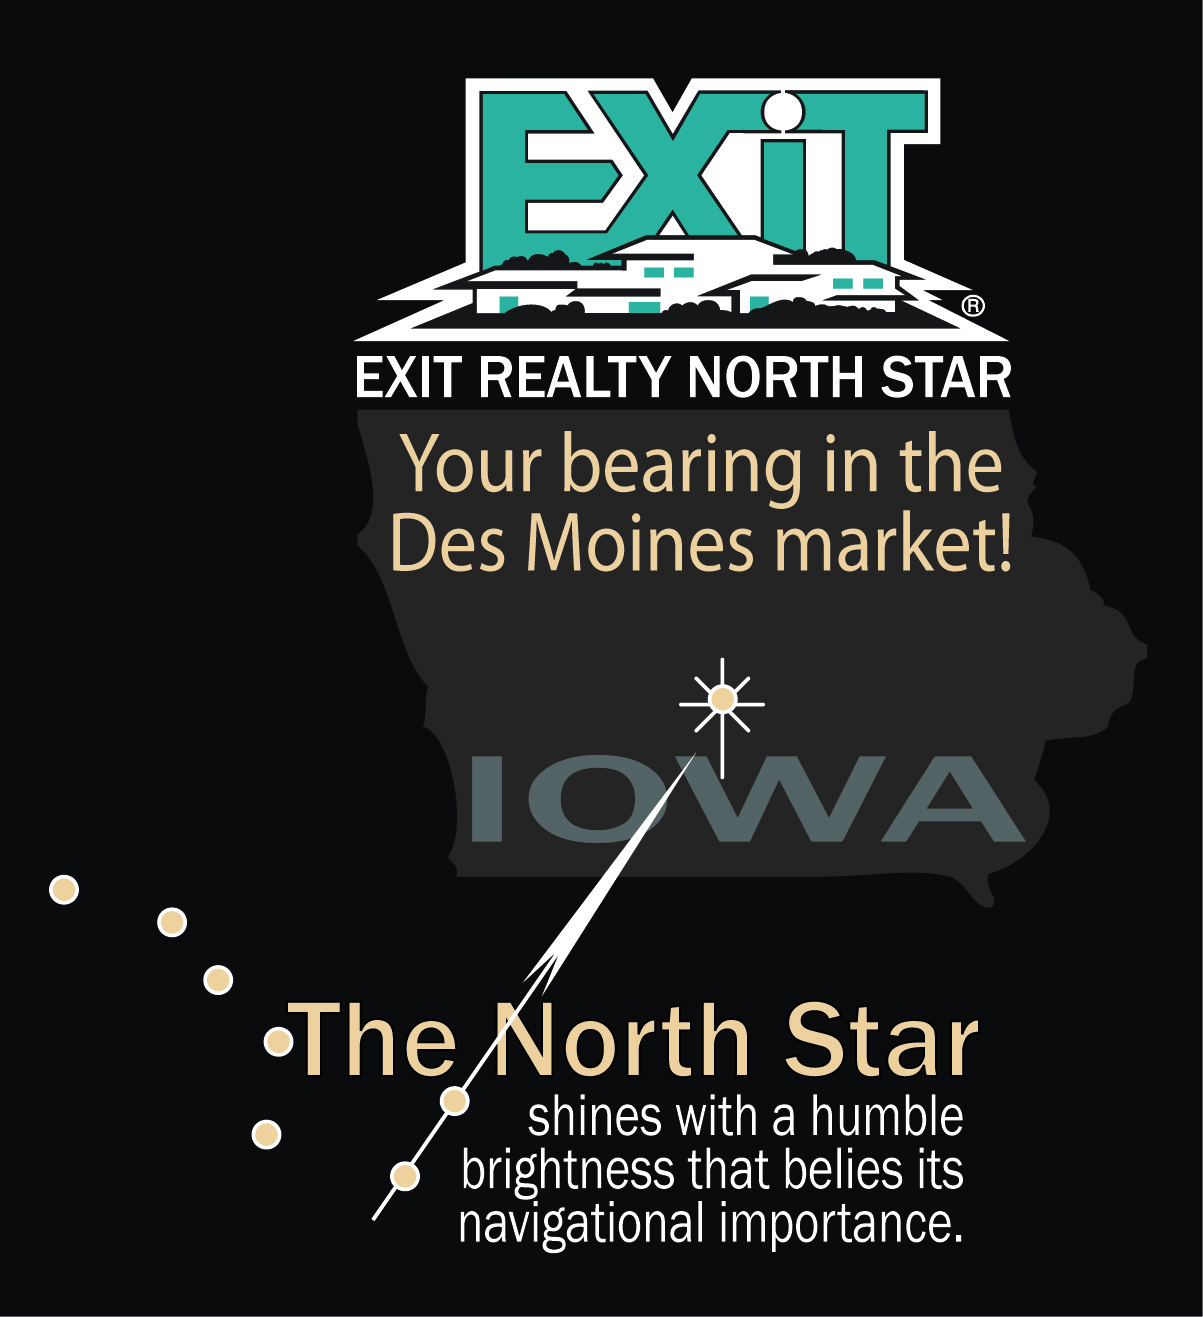 Exit Realty North Star Iowa bearing